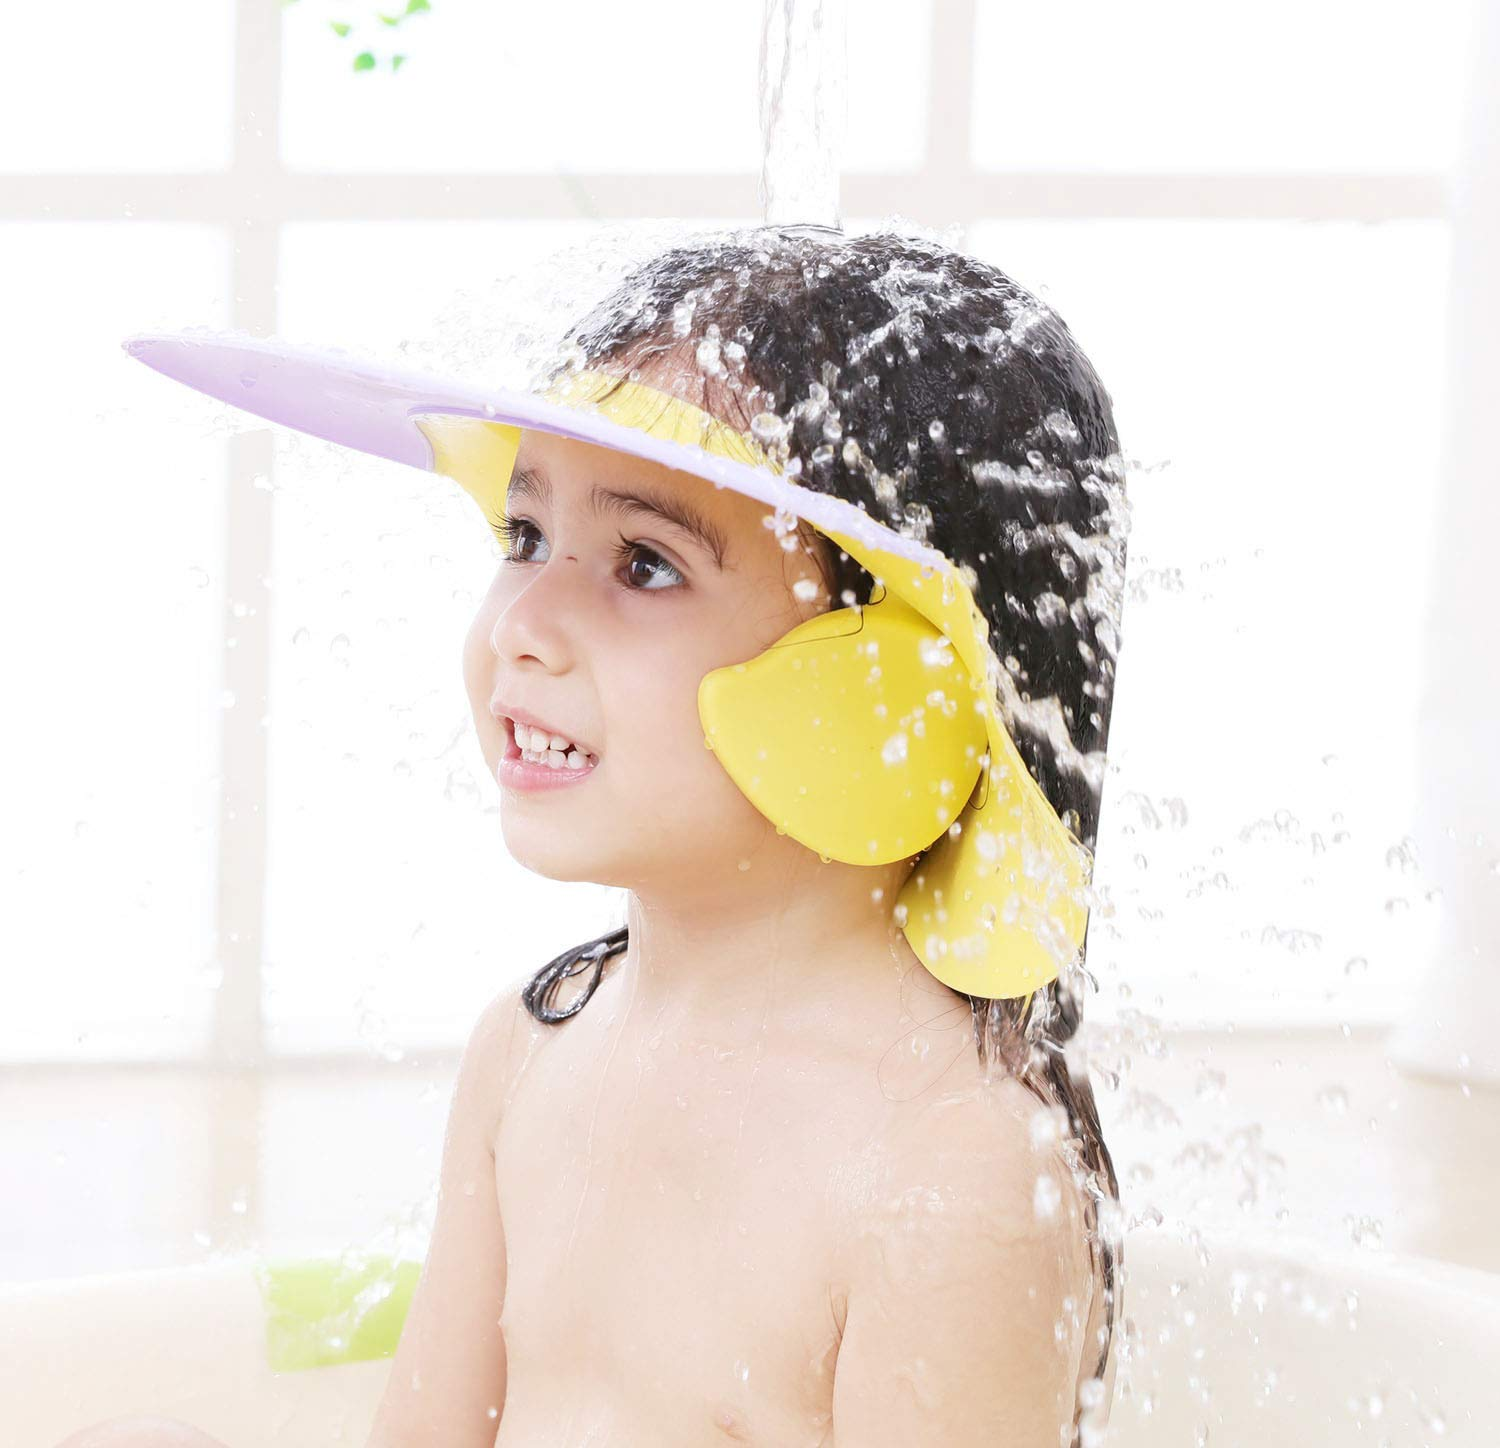 Baby Shower Cap Adjustable Silicone Shower Visor Bathing Hat Shampoo Caps Soft Stretchy Safety Bath Hats Protect Eyes Ears for Kids Toddler Infants Children with Ear Protection (Purple Dolphin)